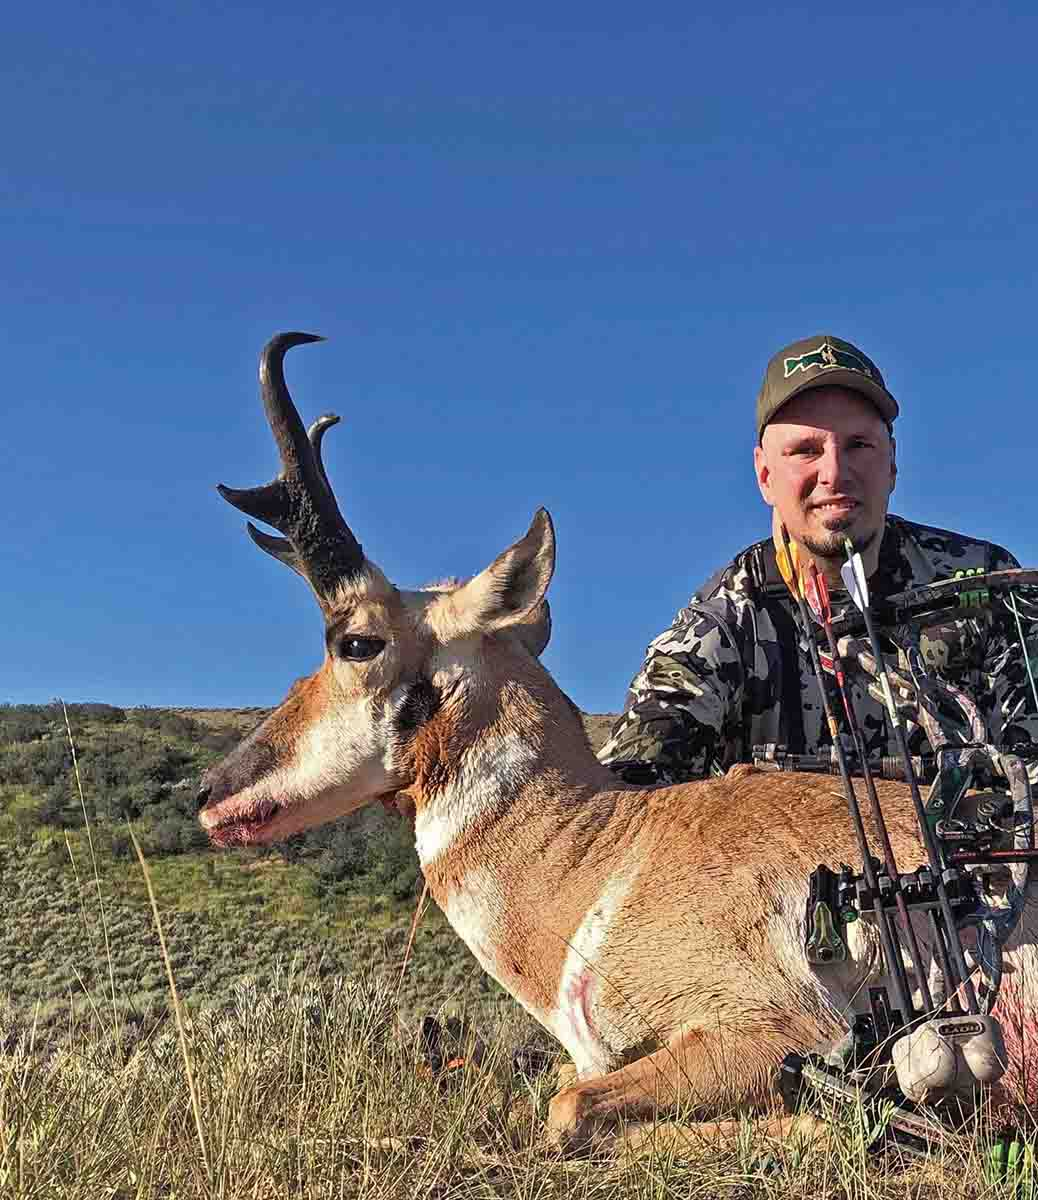 Thomas Grill did his homework to help him fill his Wyoming antelope tag on a great public land buck on the first day of the season. Scouting new ground and practicing with his bow helped the seasoned hunter find a heavy-horned buck to put his tag on.